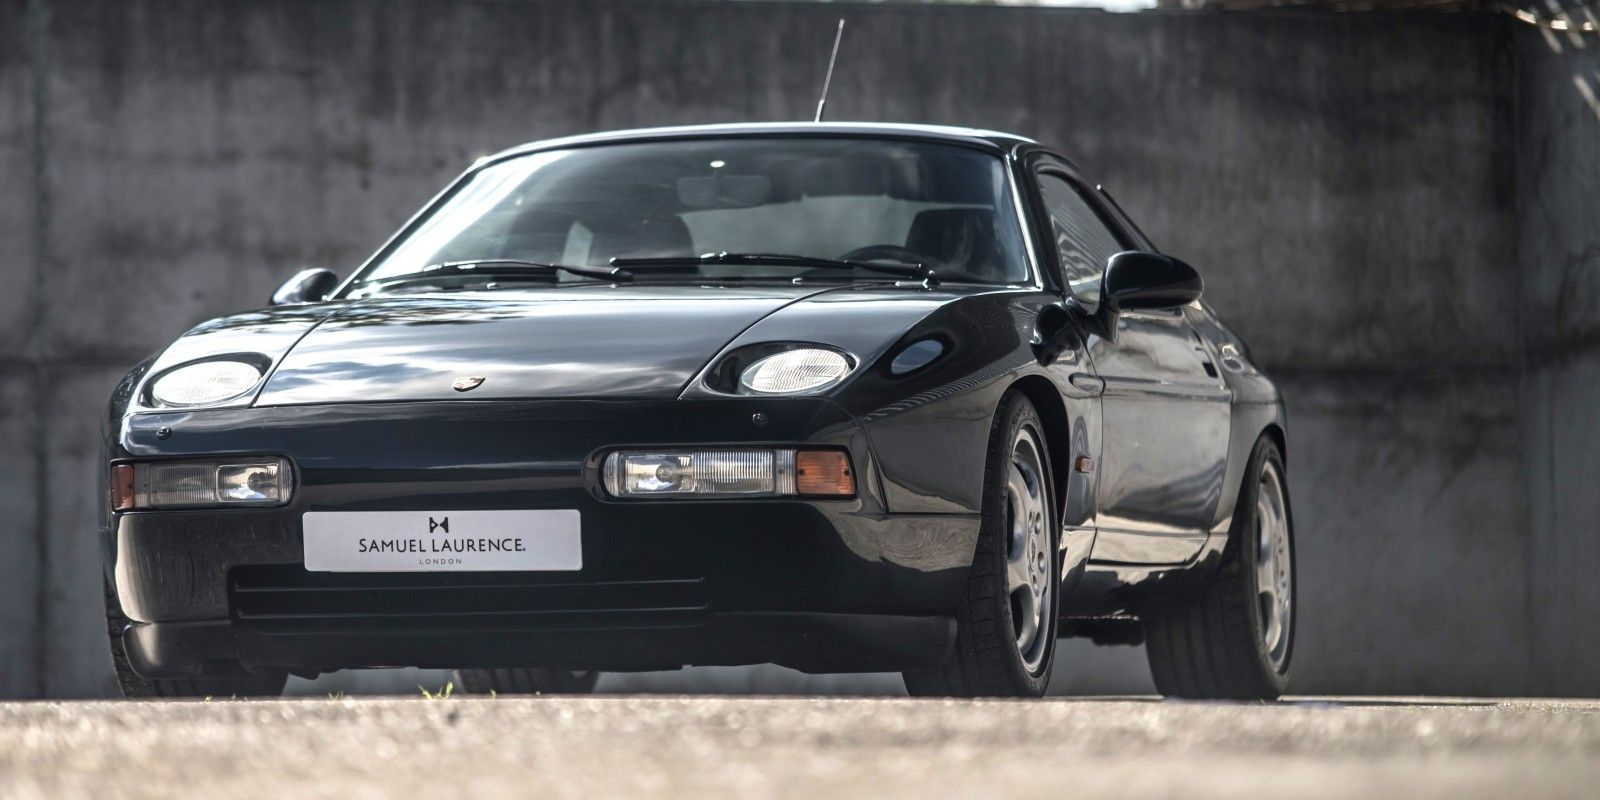 1994 Porsche 928 GTS for sale at Samuel Laurence. Triple black car, the last of the line and the most desirable GTS model.